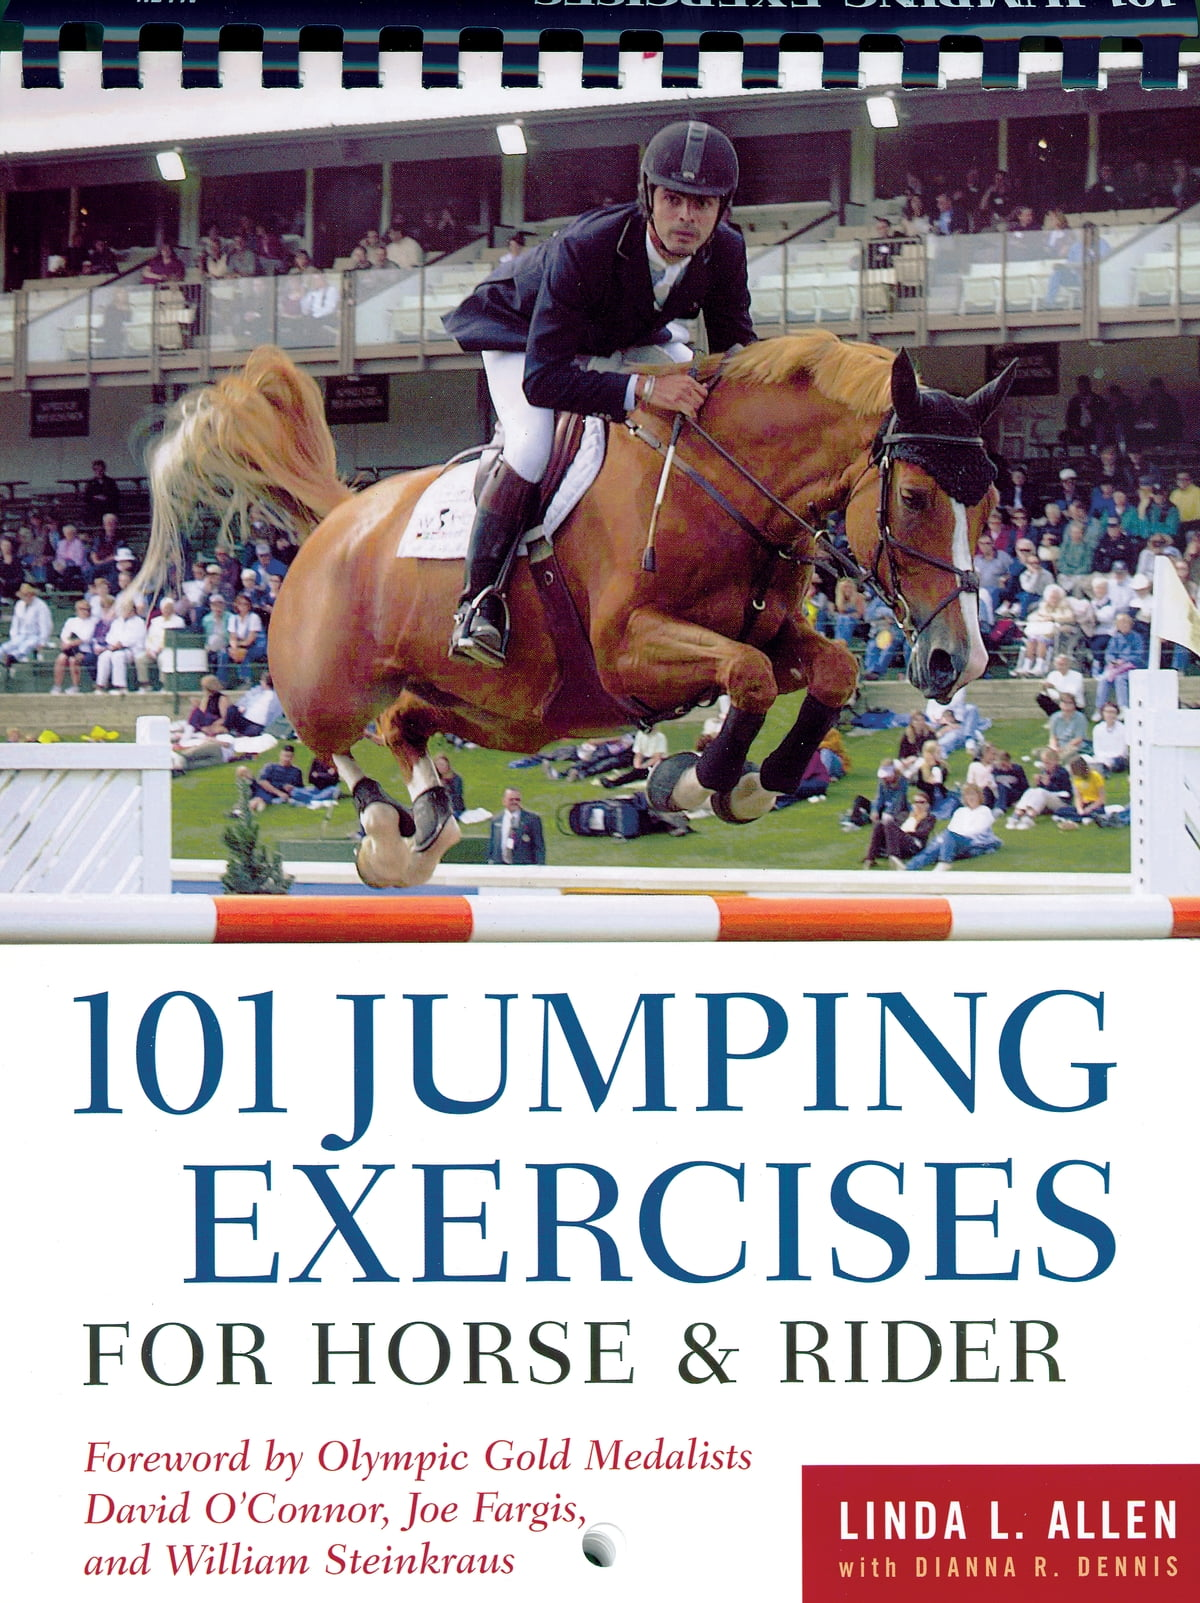 101 Jumping Exercises for Horse & Rider eBook by Linda Allen -  9781603423946 | Rakuten Kobo